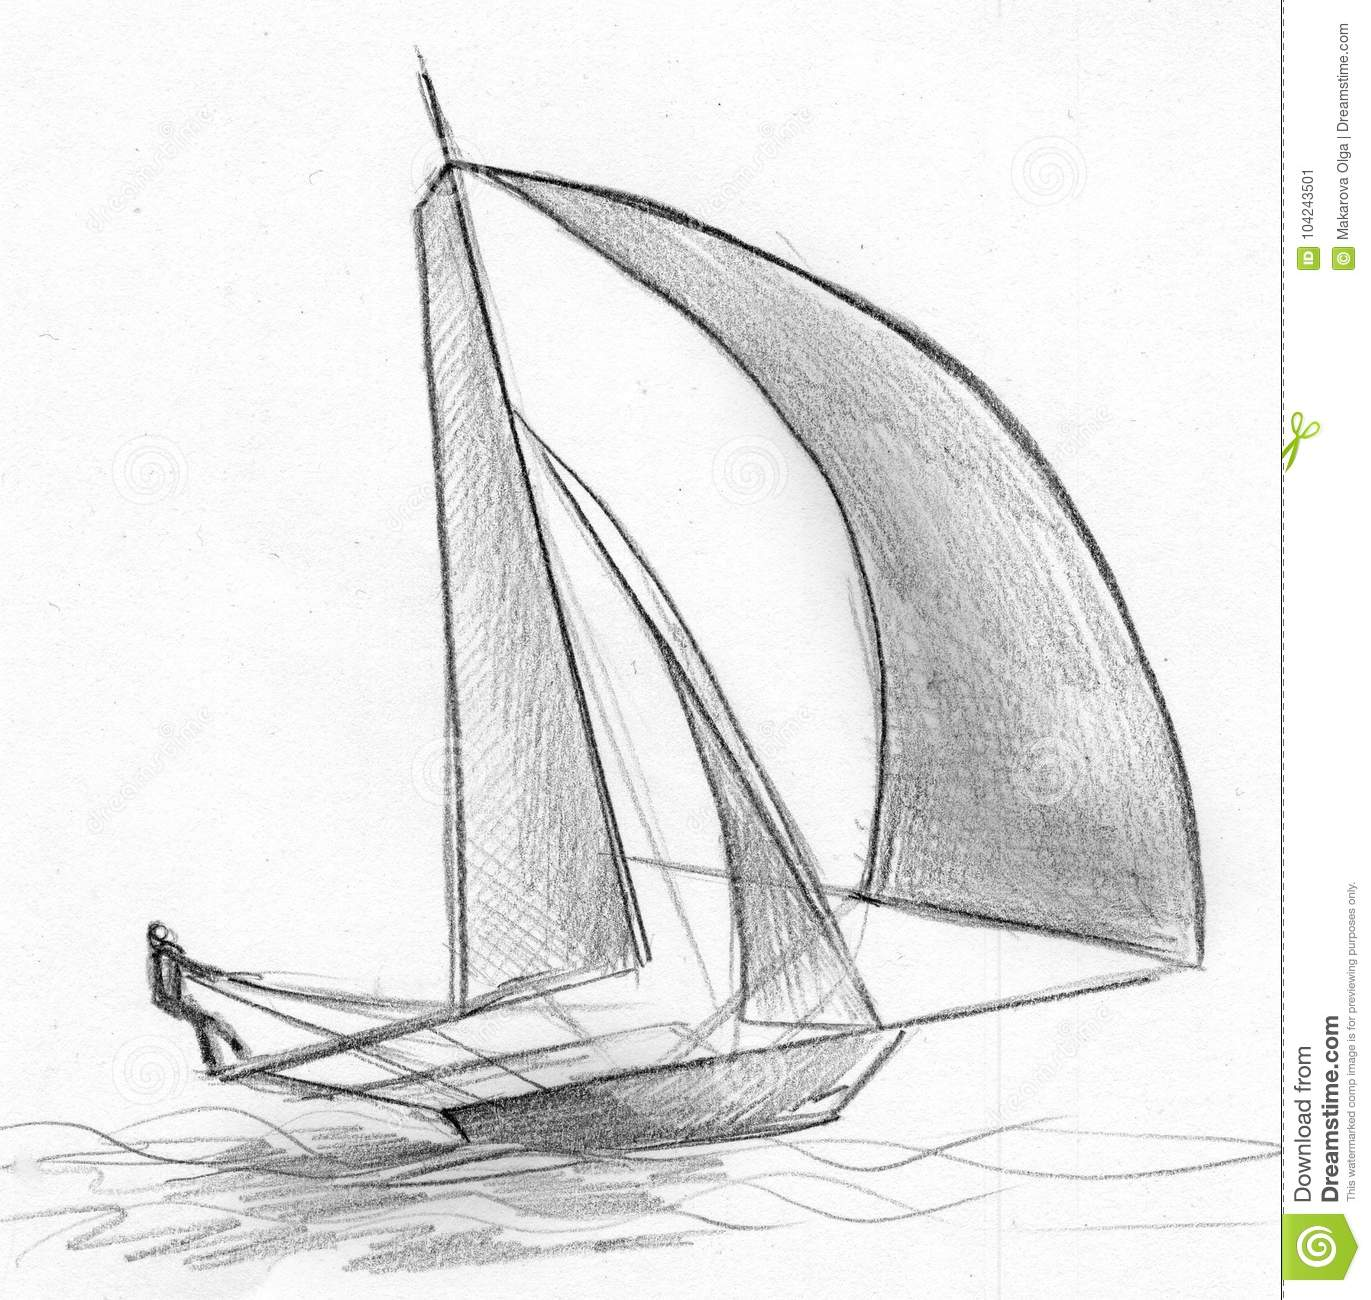 Hand drawn pencil sketch of a small yacht going forward at full speed and manned by one person